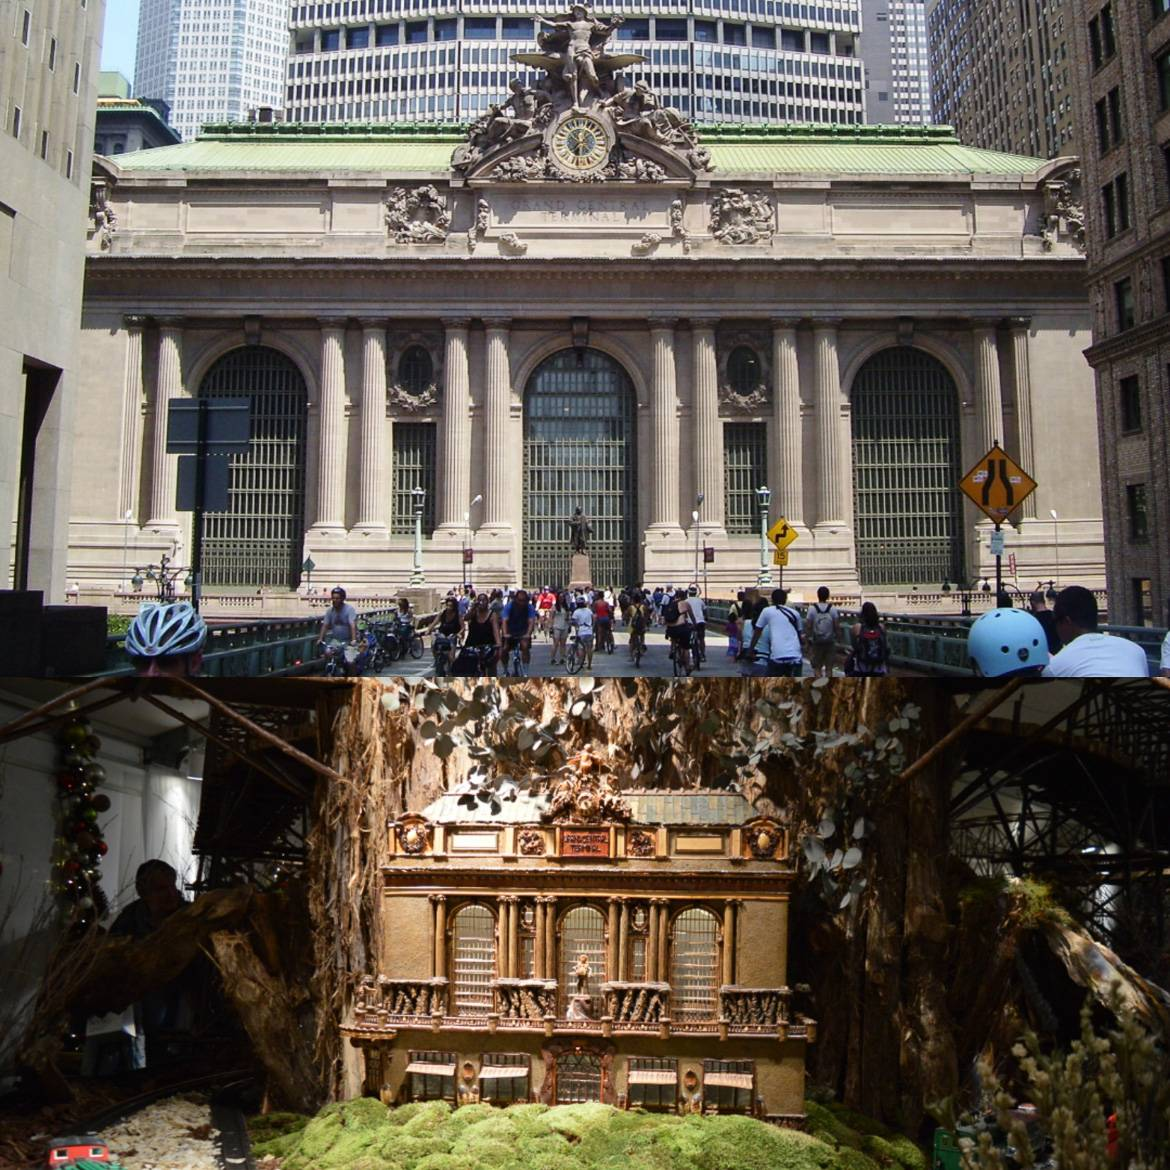 Image of a replica of Grand Central Terminal made of tree bark and image of Grand Central Terminal with bicyclists on the roadway in front